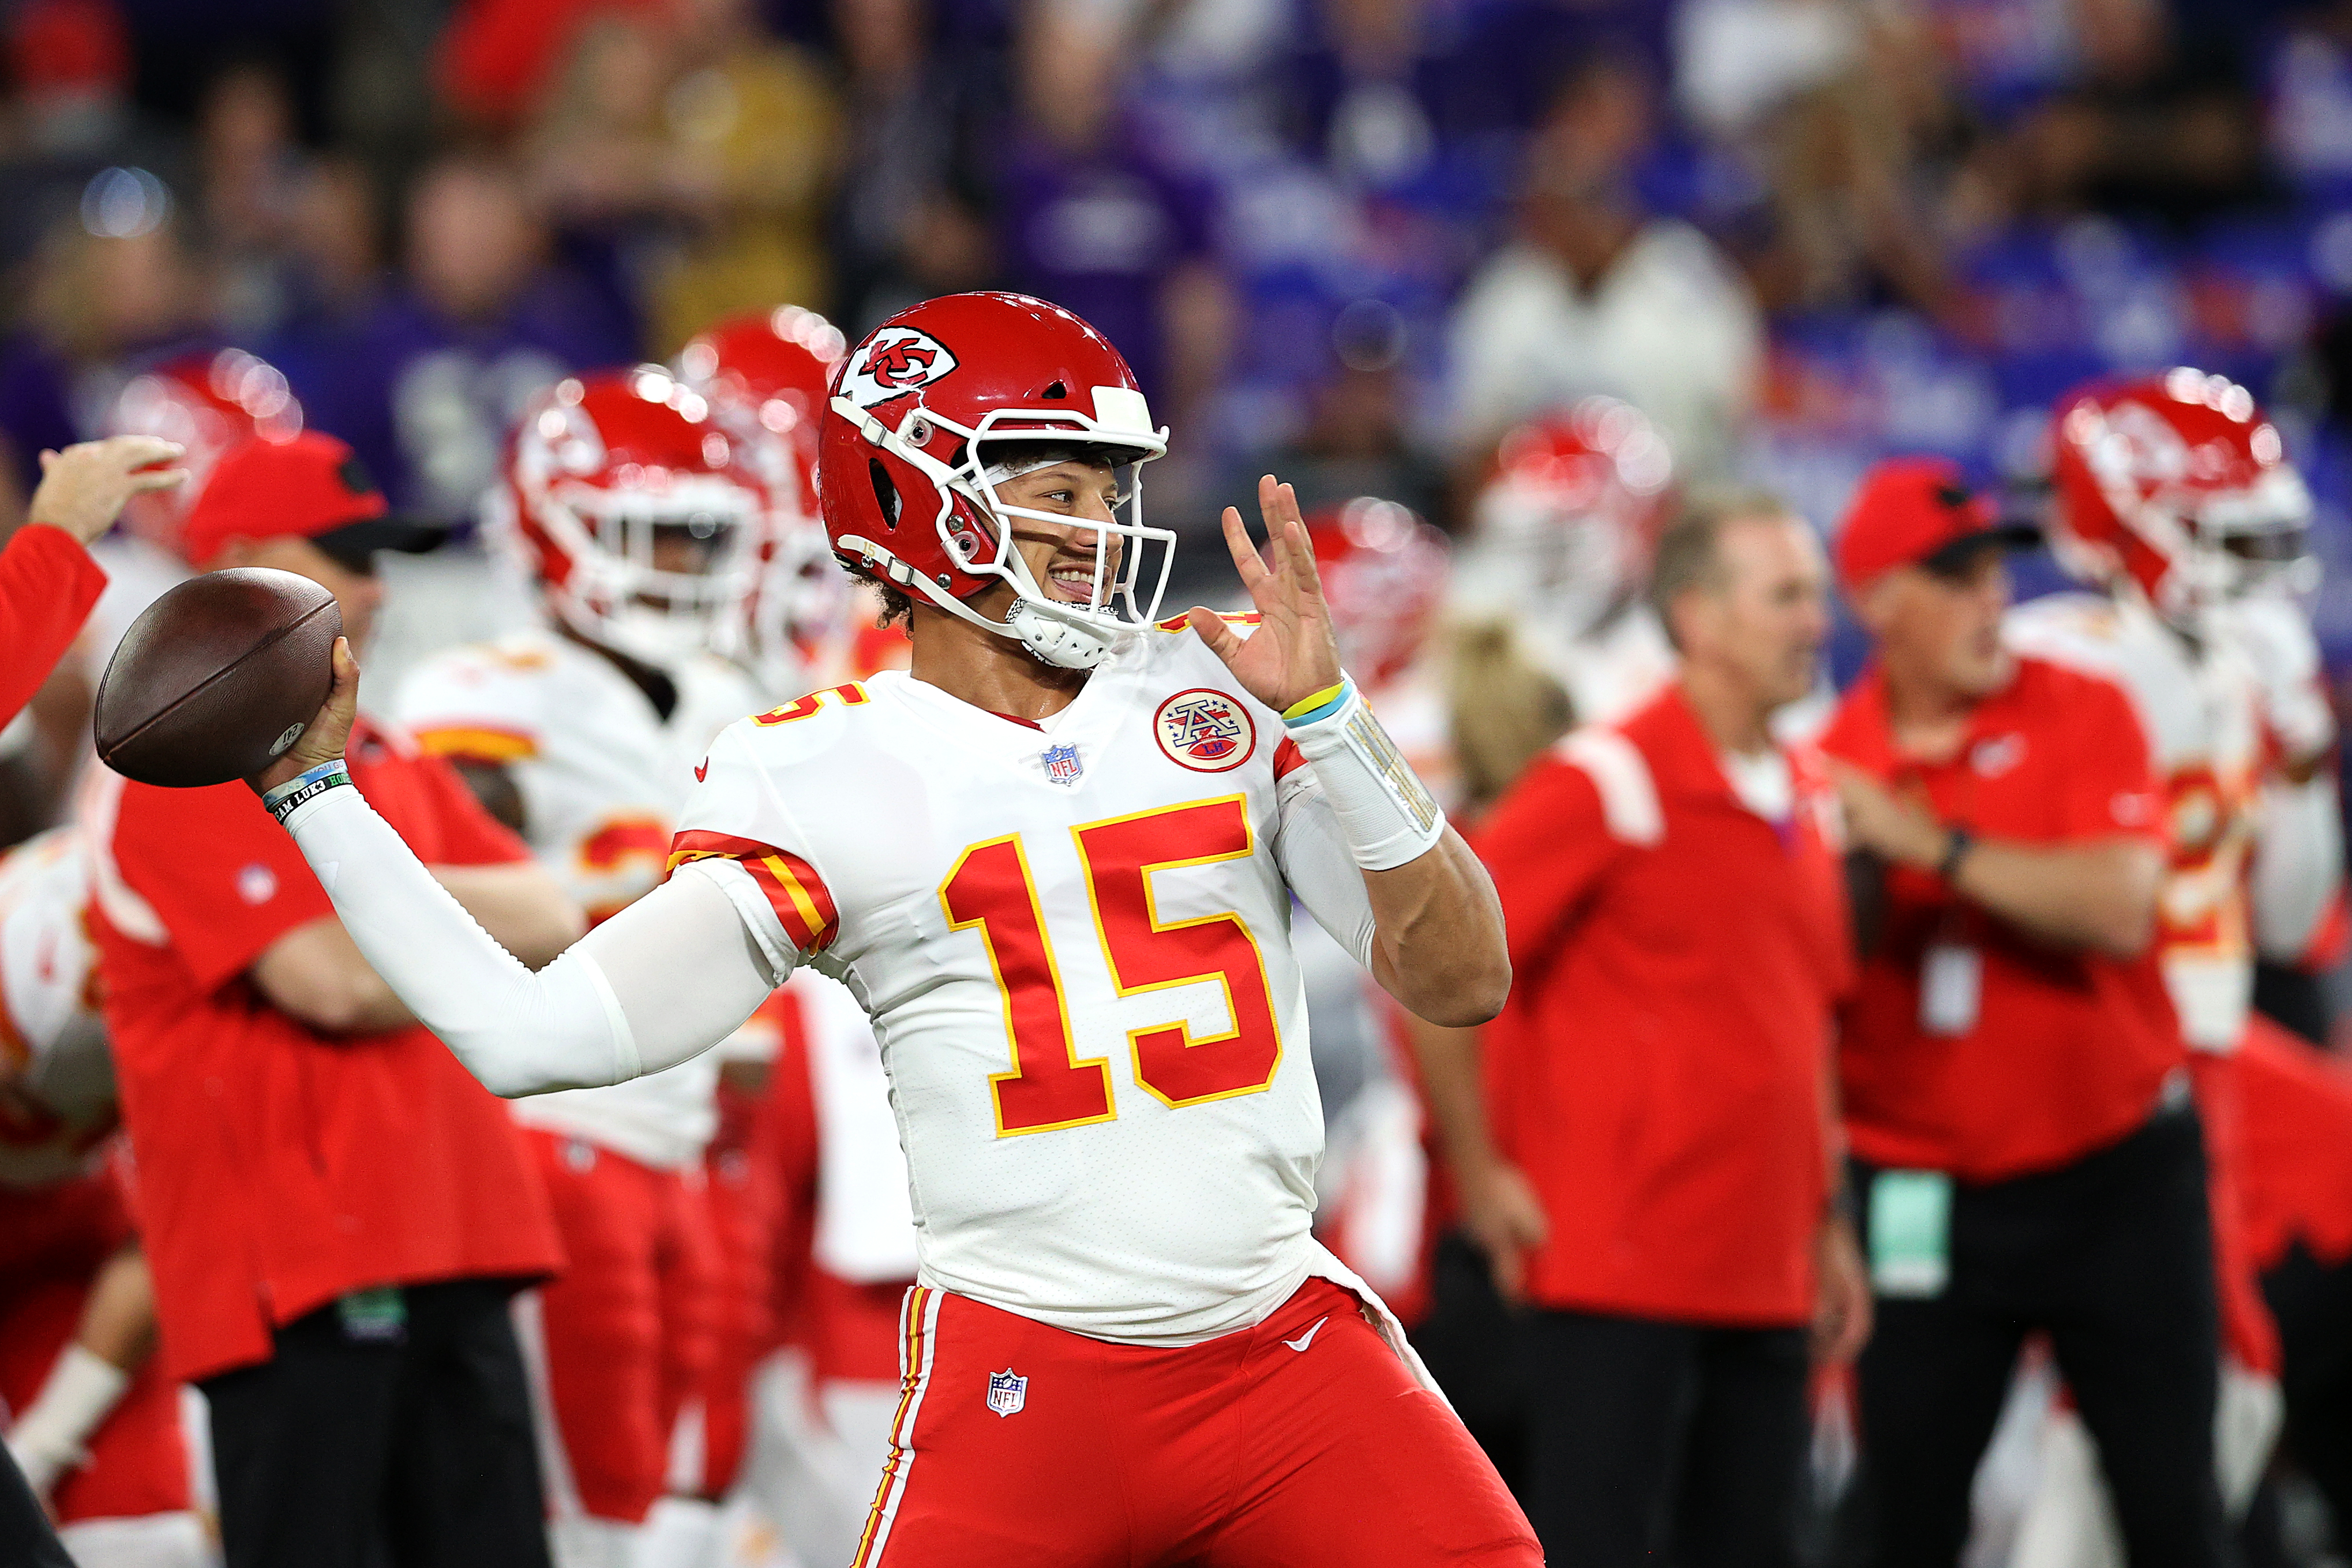 Quarterback Patrick Mahomes #15 of the Kansas City Chiefs warms up against the Baltimore Ravens at M&T Bank Stadium on September 19, 2021 in Baltimore, Maryland.